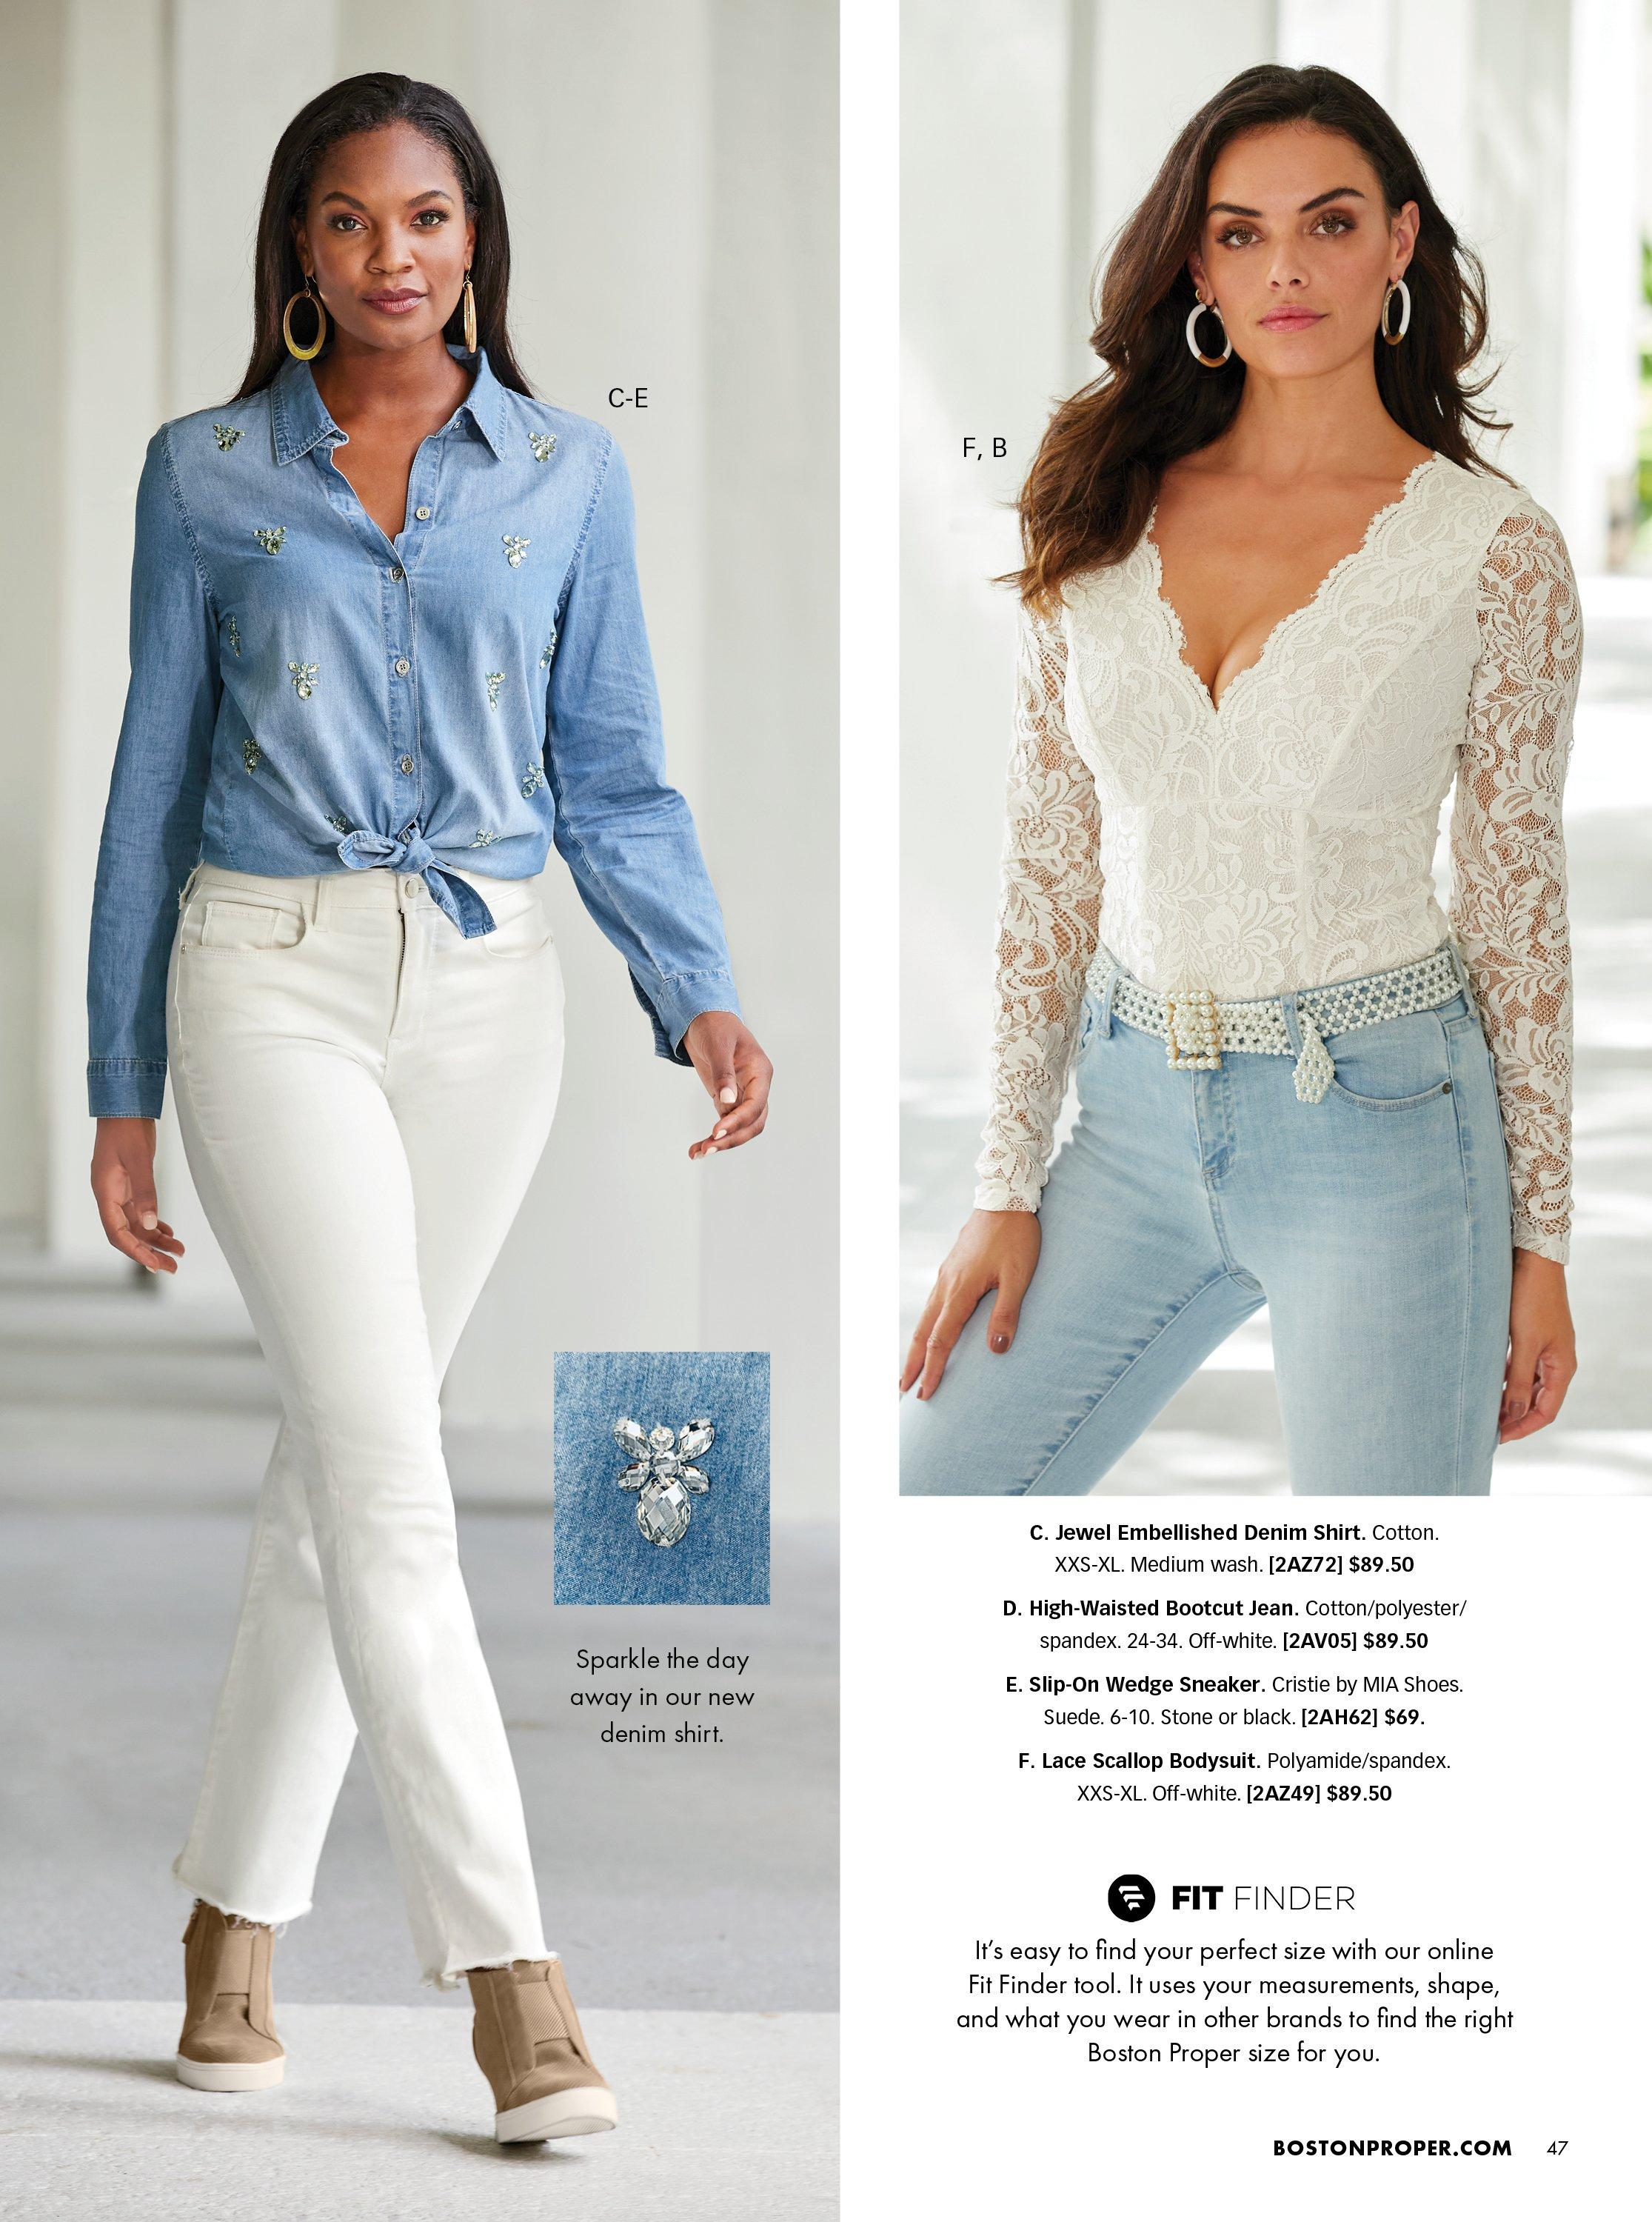 left model wearing a jewel embellished denim button-up top that is tied at the front, white jeans, and taupe sneaker wedges. right model wearing a white scallop lace long-sleeve bodysuit, pearl embellished belt, and light wash jeans.